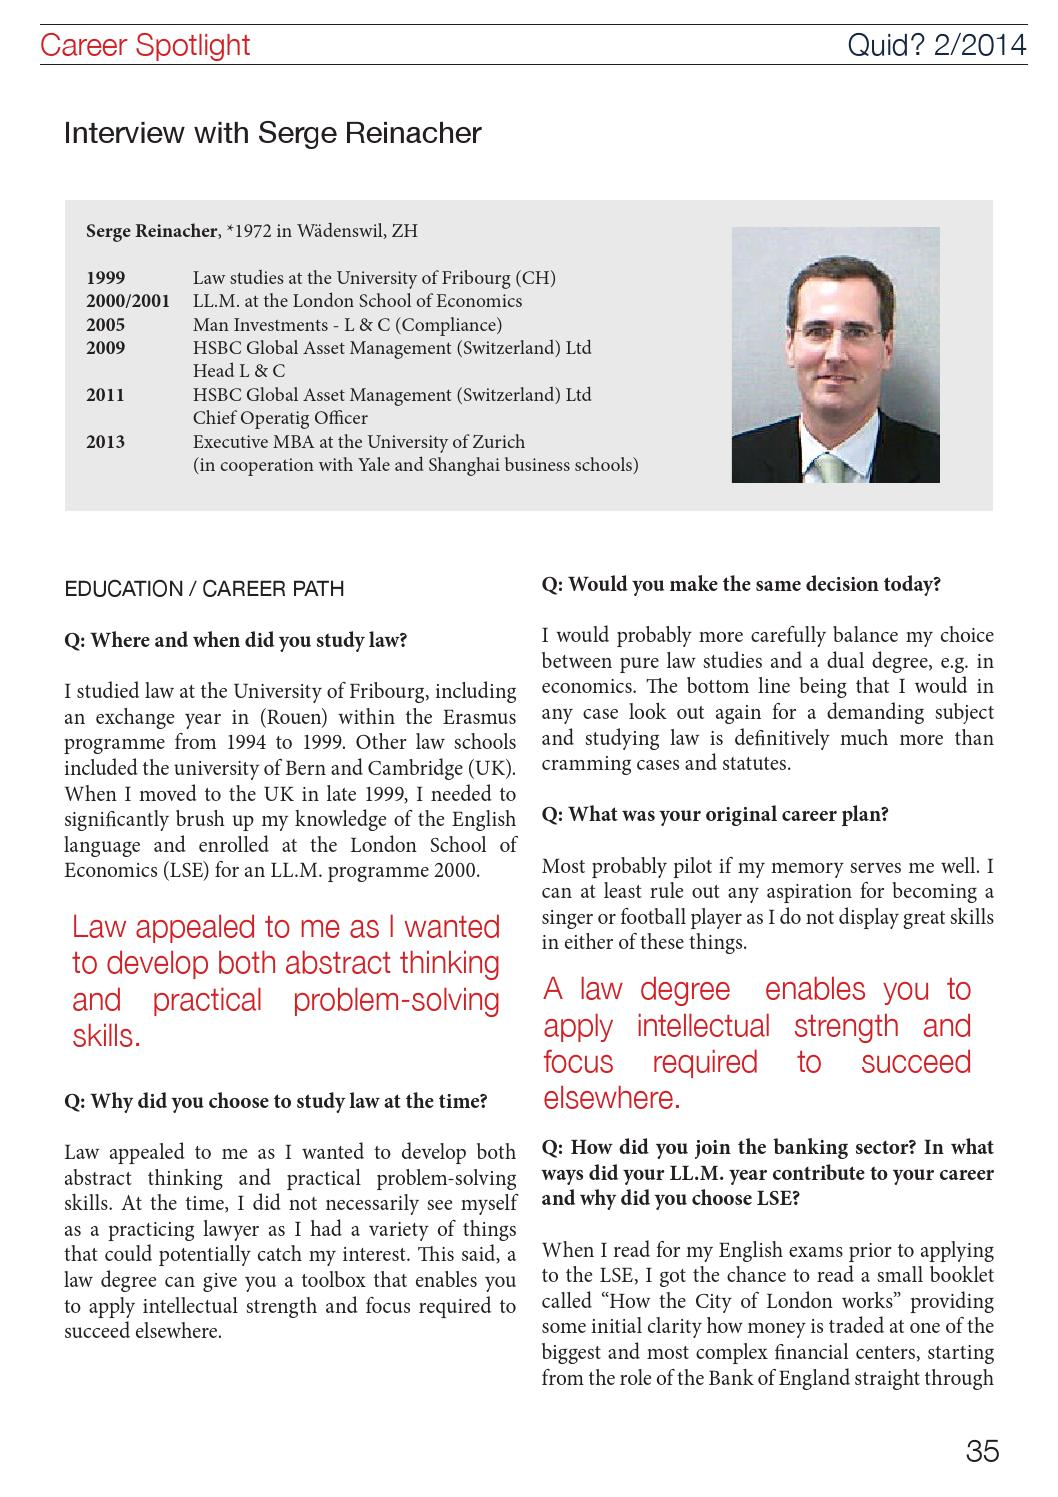 Quid 2/2014 by Quid? Fribourg Law Review - issuu